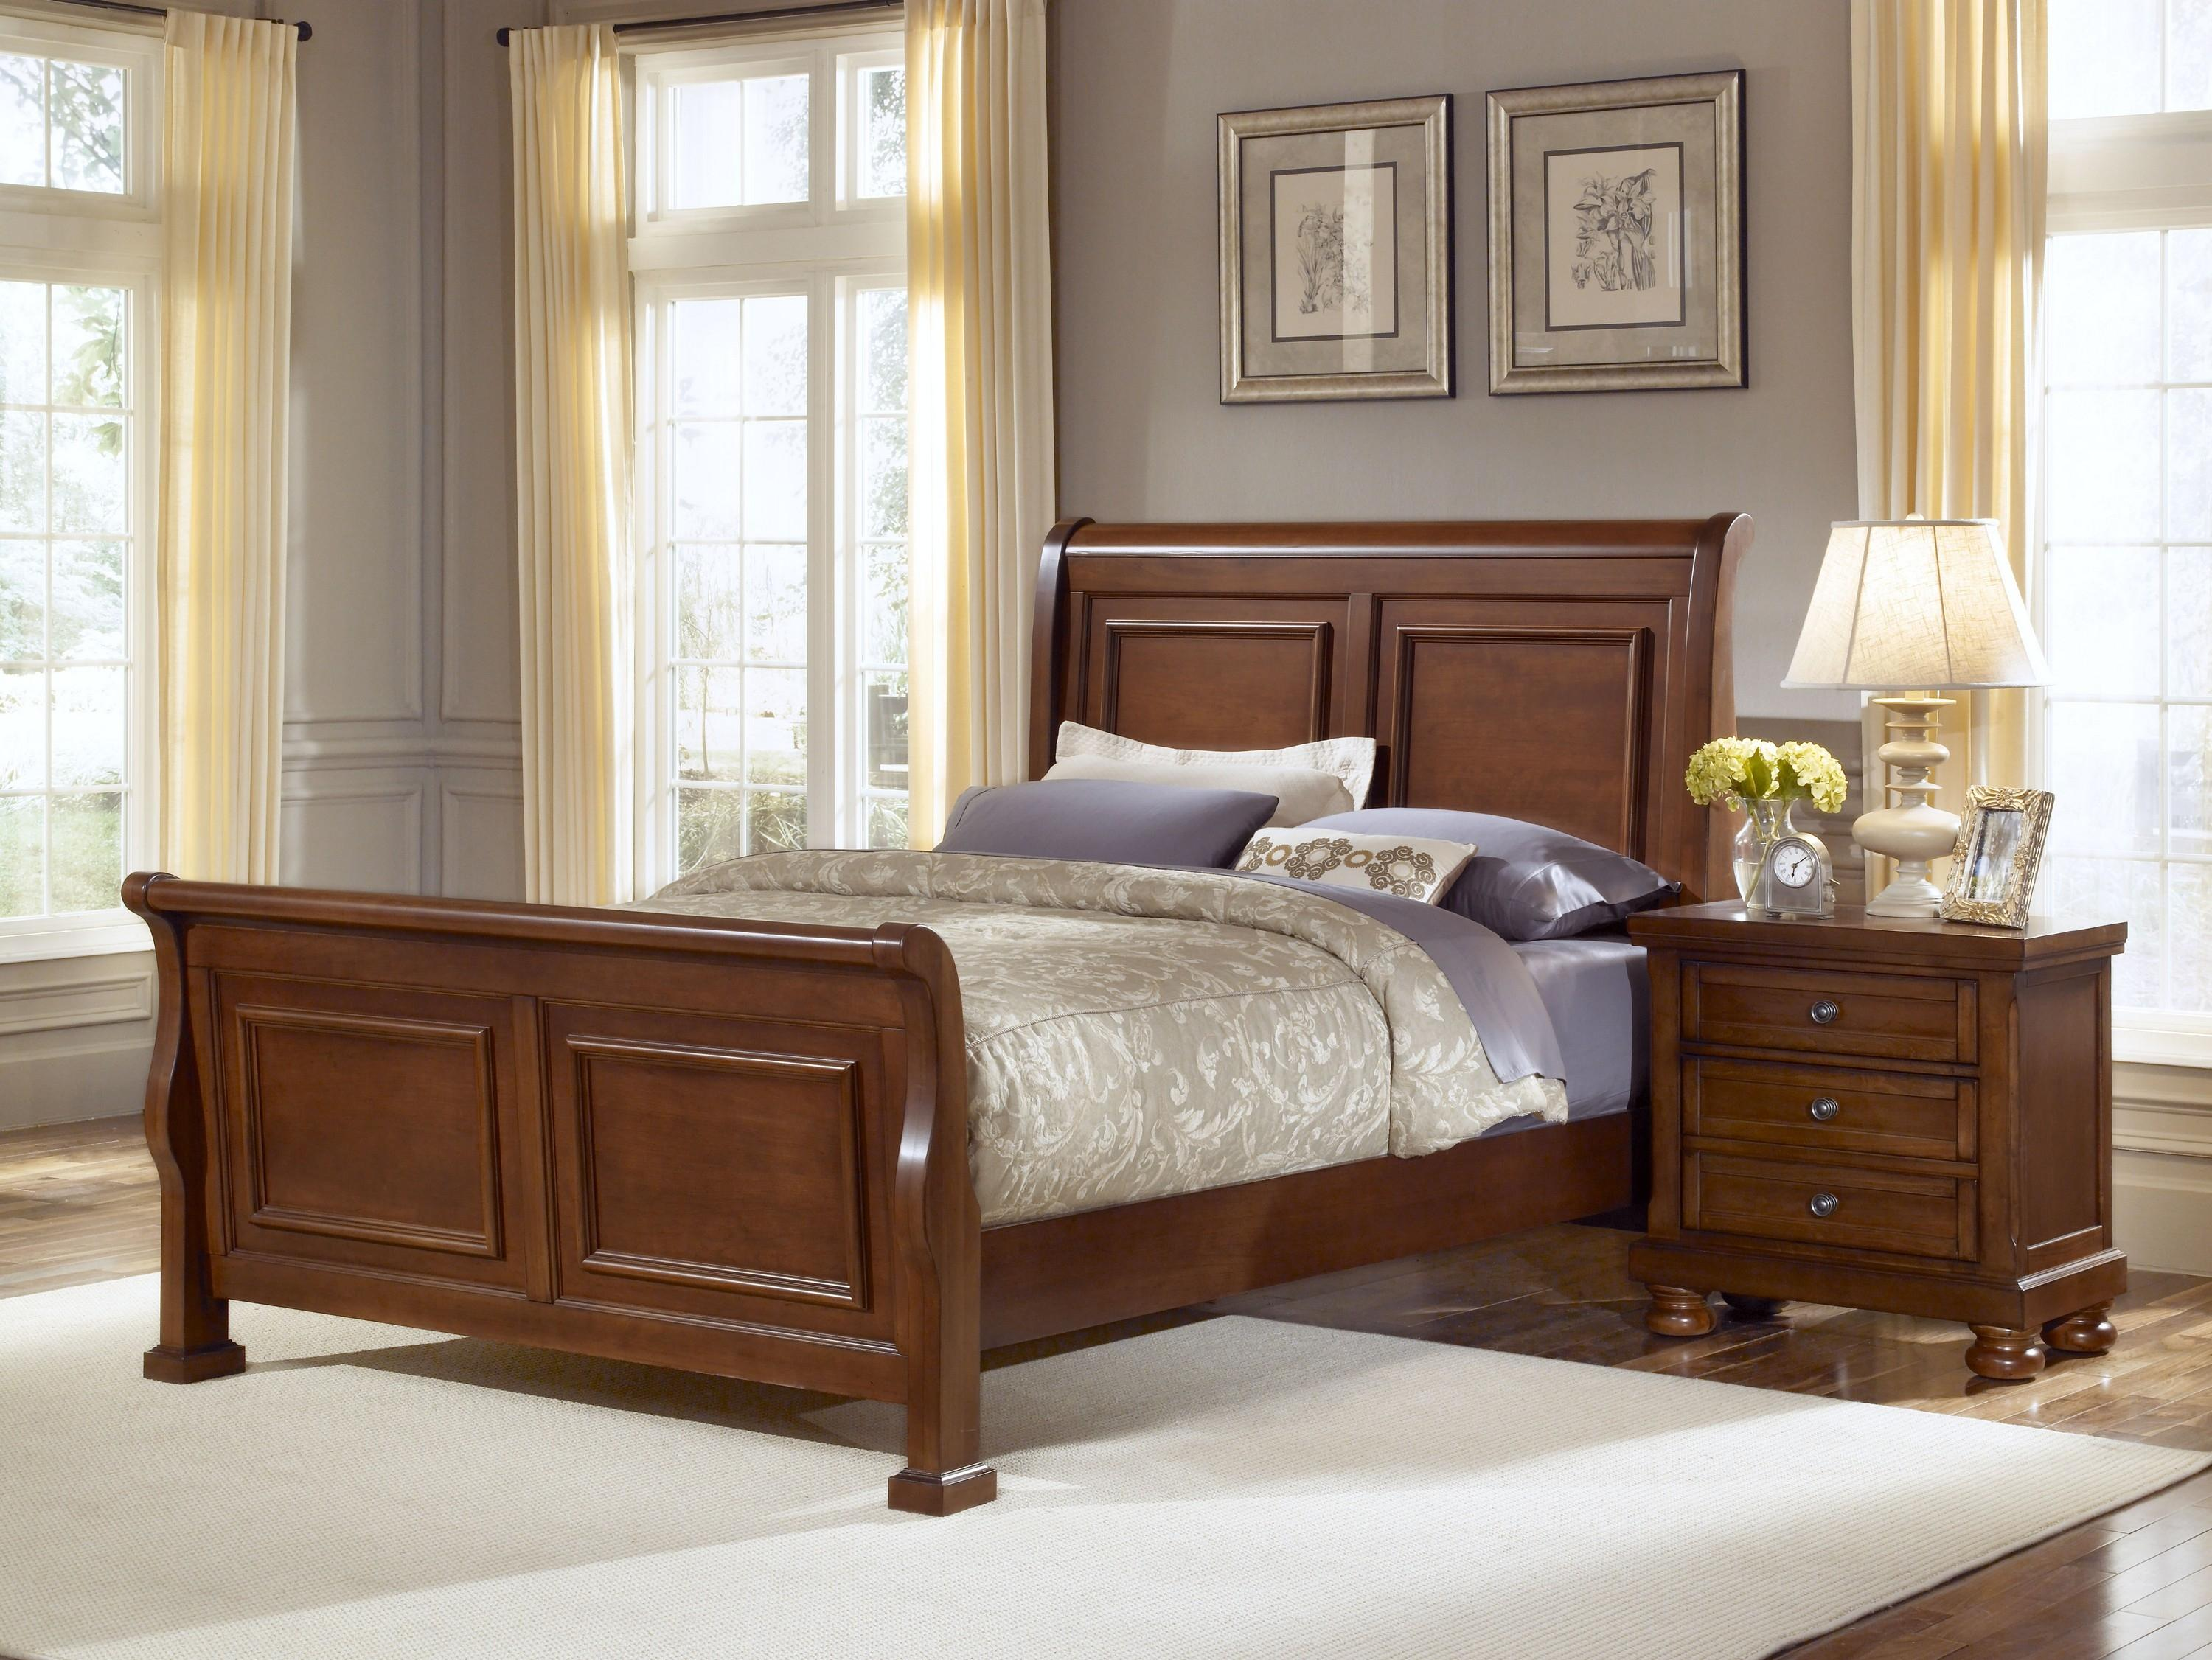 reviews collection bedroom the groups quality furniture bassett suites hamiltonfranklin luxury cupboard vaughan